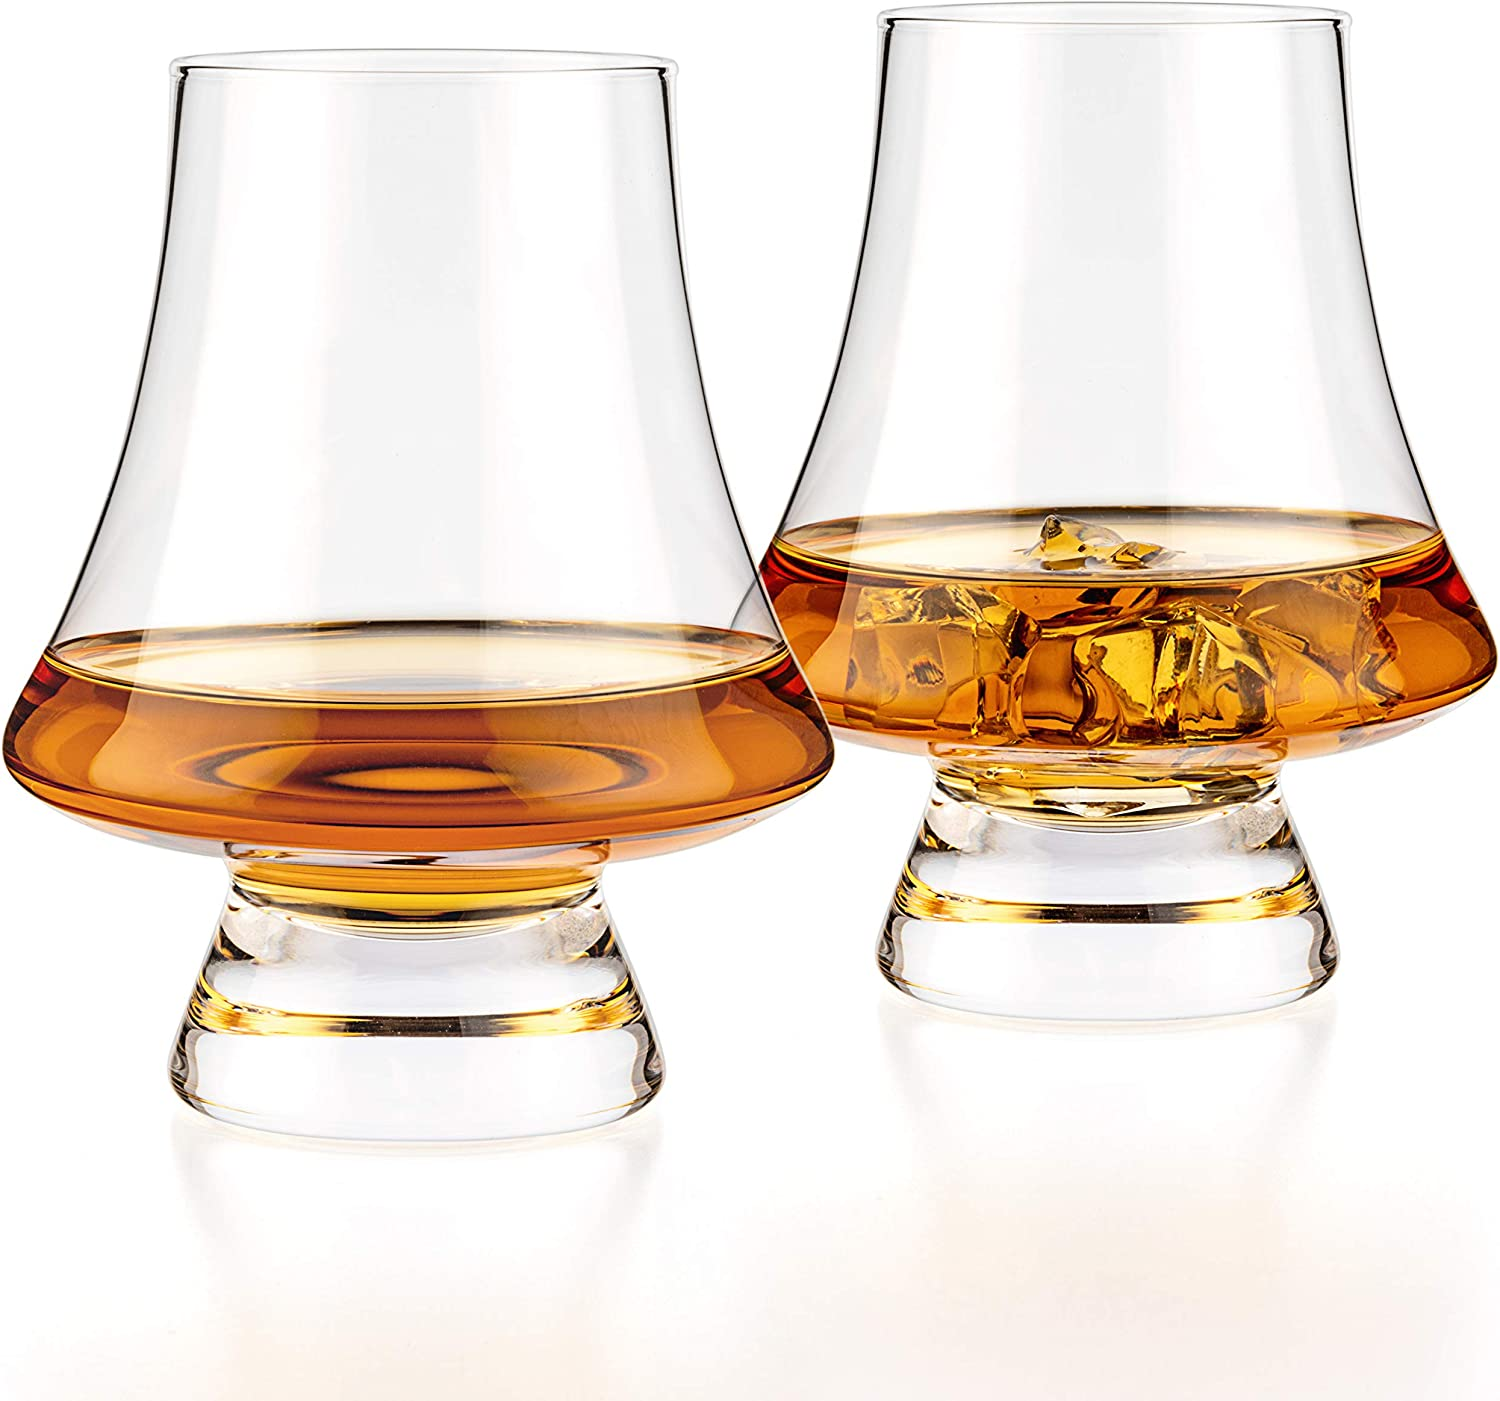 Luxbe - Bourbon Whisky Crystal Glass Snifter, Set of 2 - Narrow Rim Tasting Glasses - Handcrafted - Good for Cognac Brandy Scotch - 9-ounce/260ml